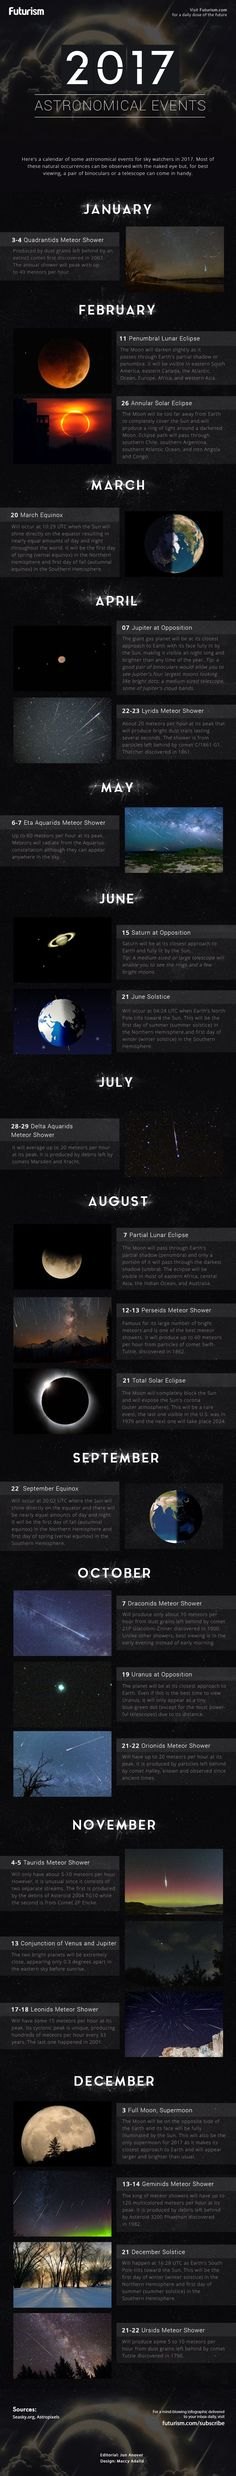 2017 Astronomical Events.